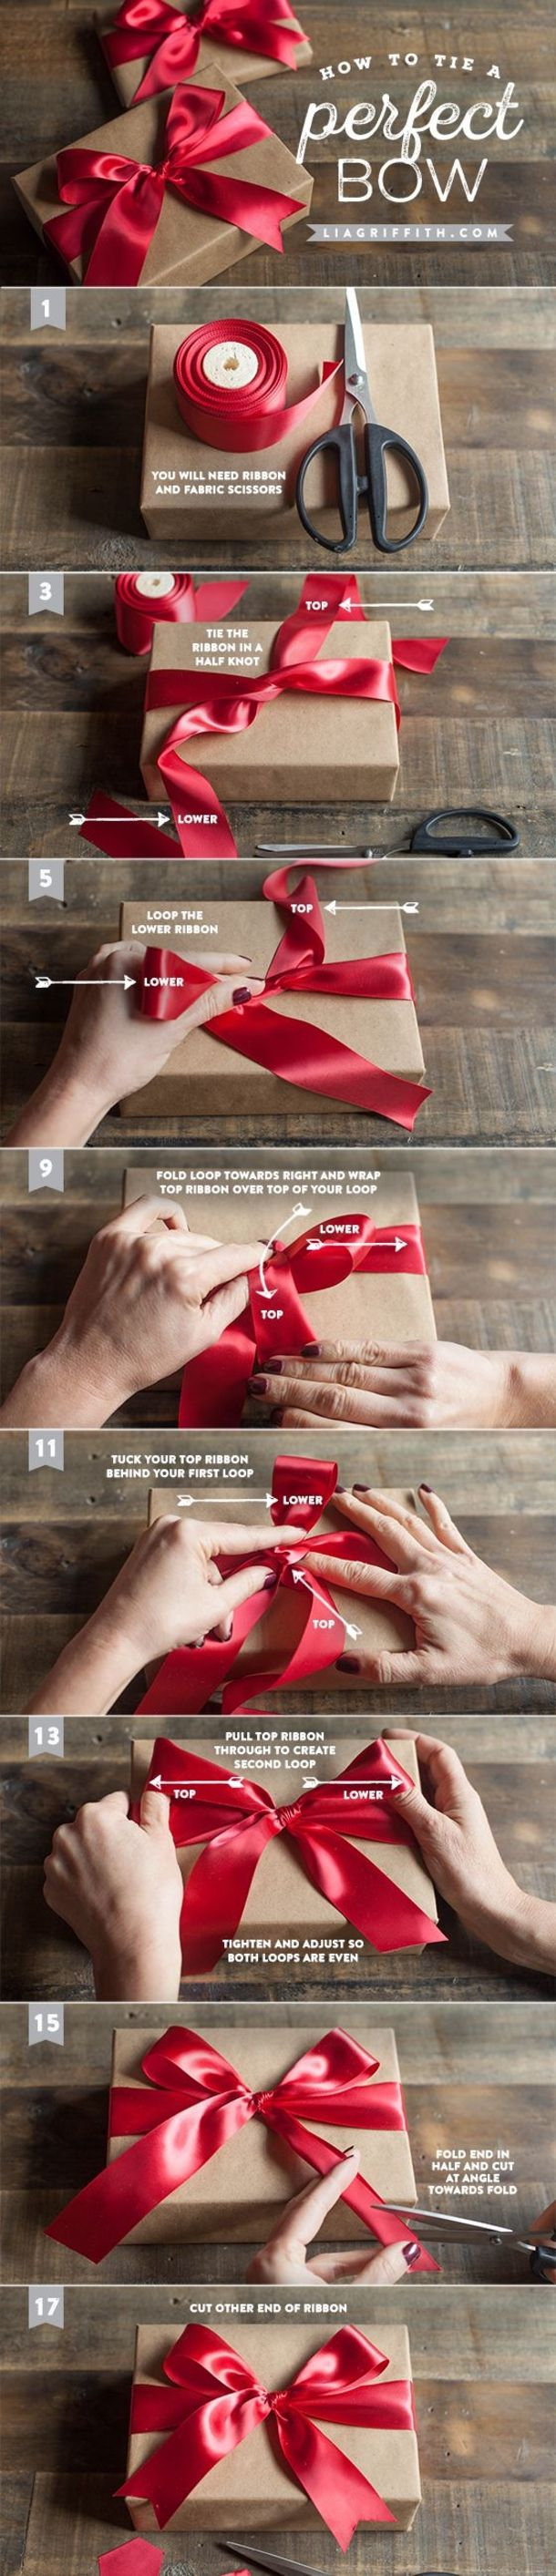 Here is a video and image tutorial showing you how to tie a perfect bow. These gift bows are perfect for Christmas or any occasion that calls for gift wrapping.